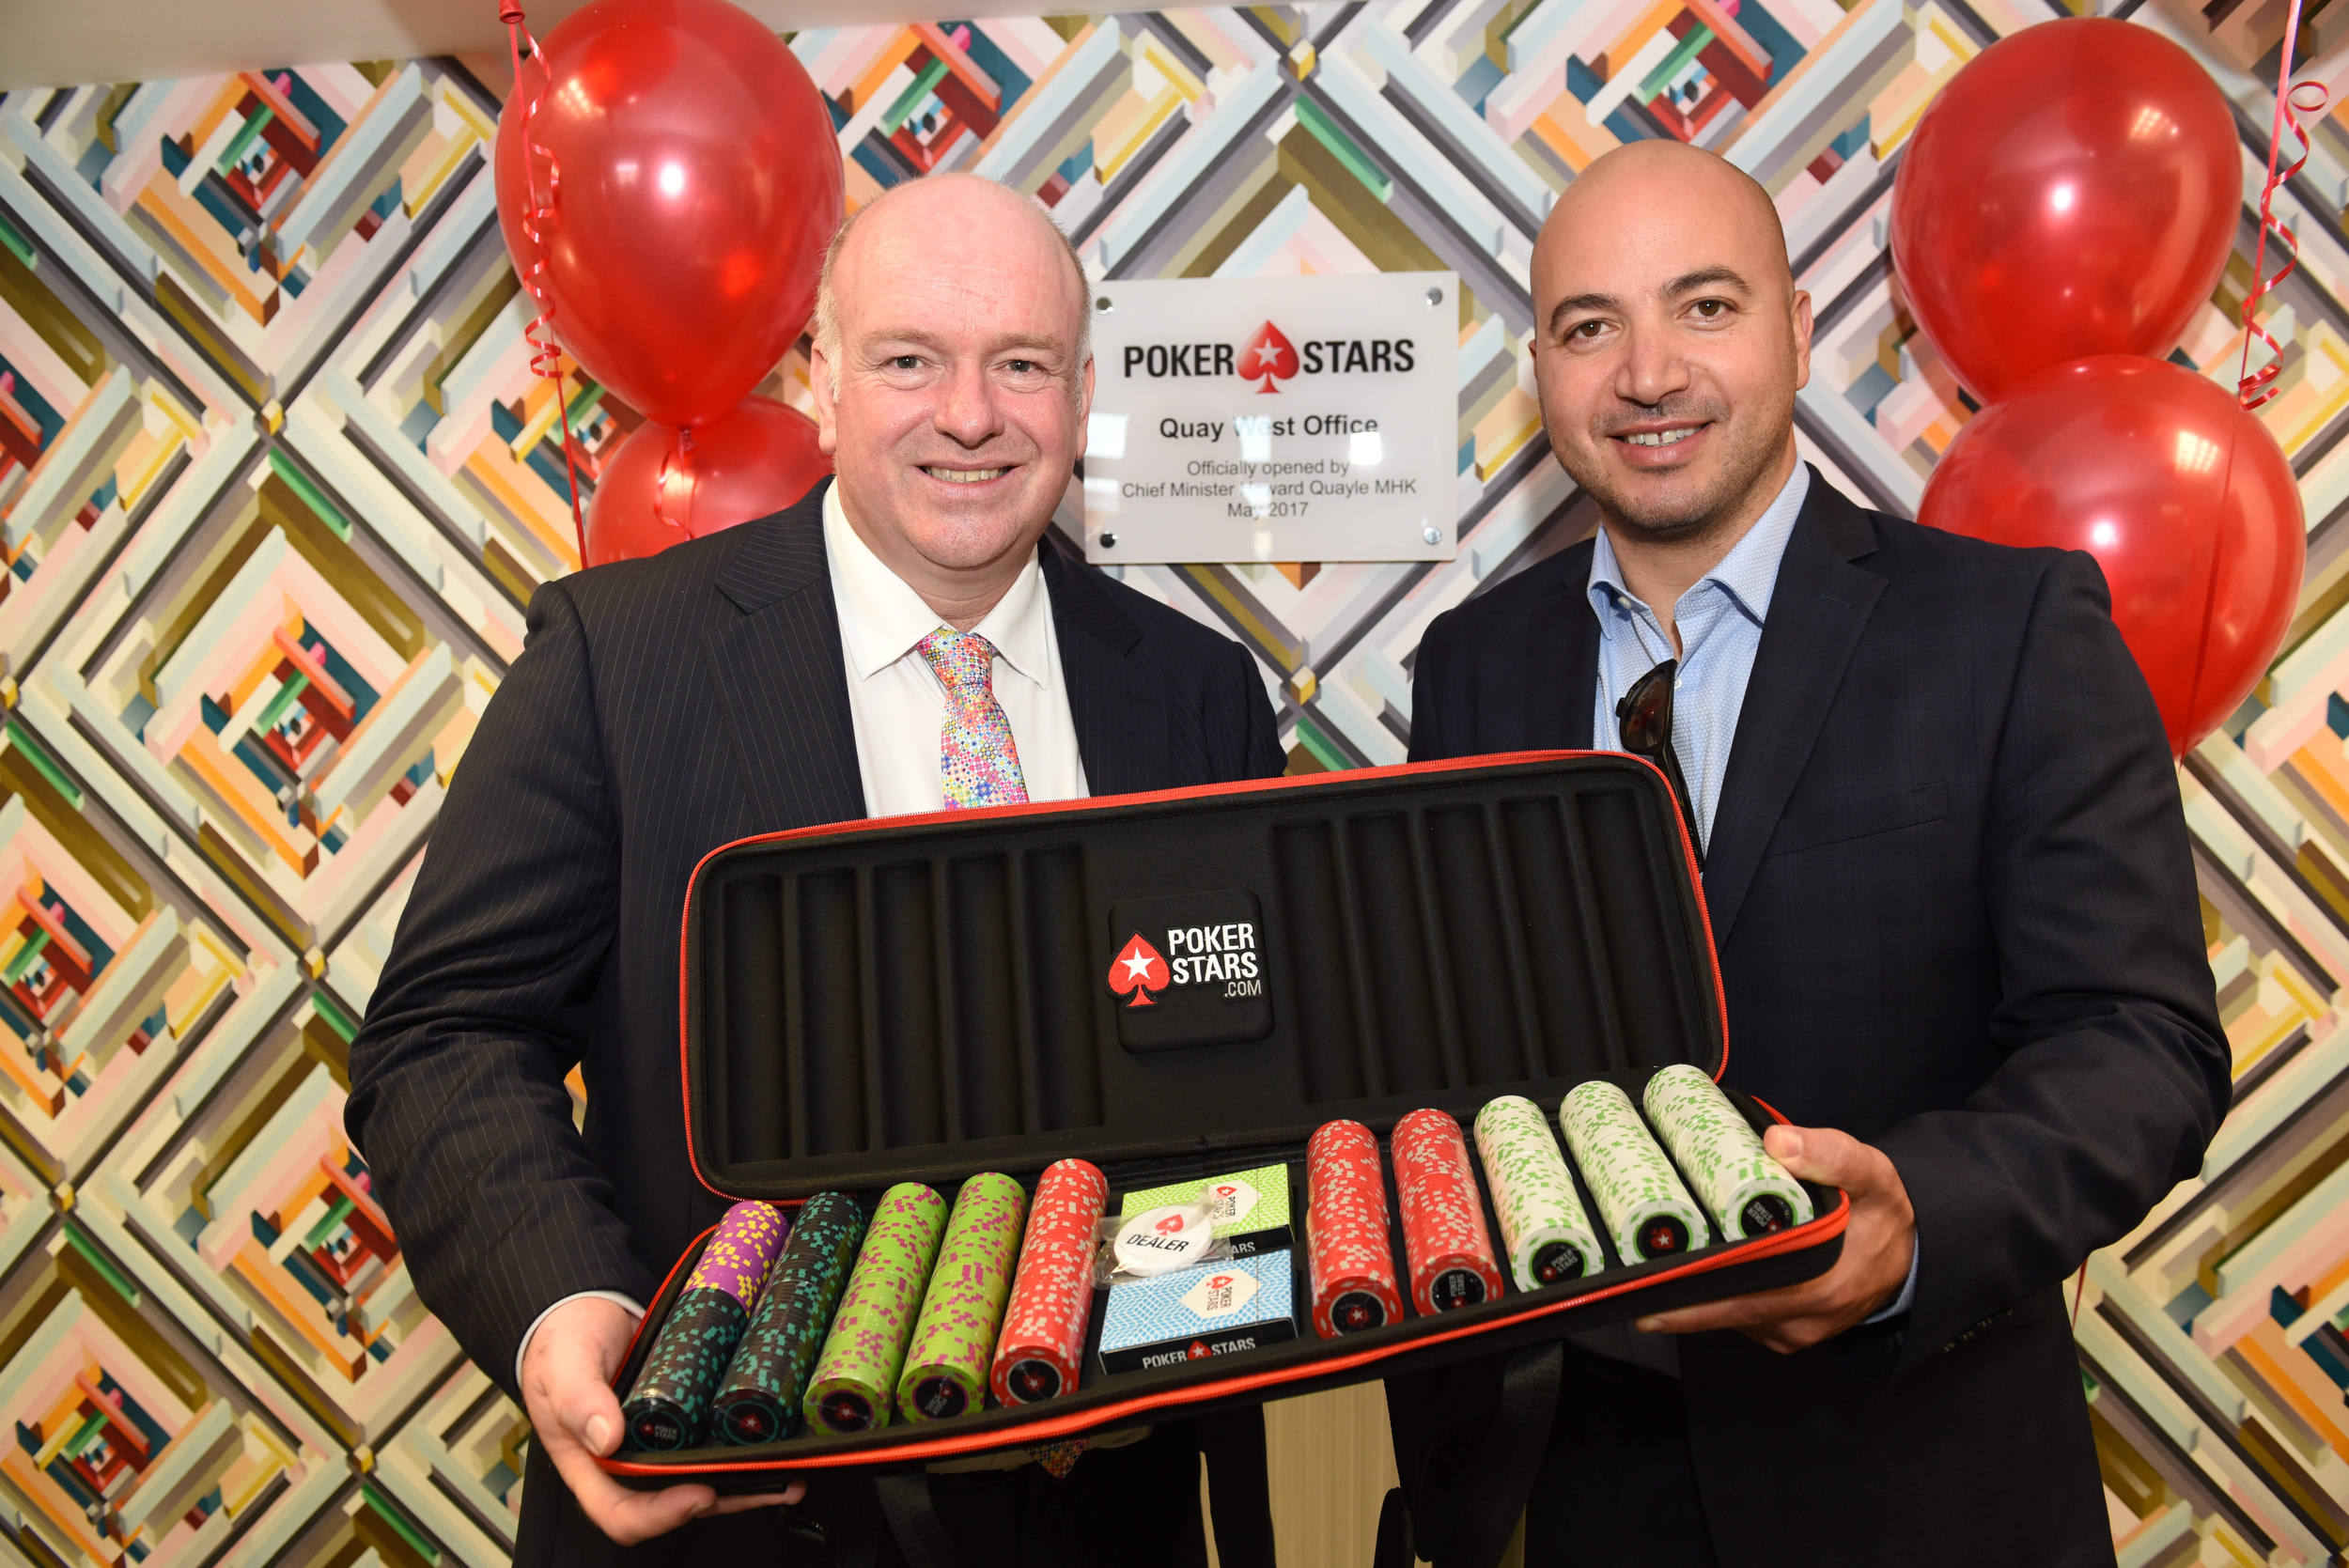 Chief Minister Howard Quayle MHK and Rafi Ashkenazi, CEO of Rational Group/PokerStars, mark the opening of PokerStars' new office in Quay West, Douglas